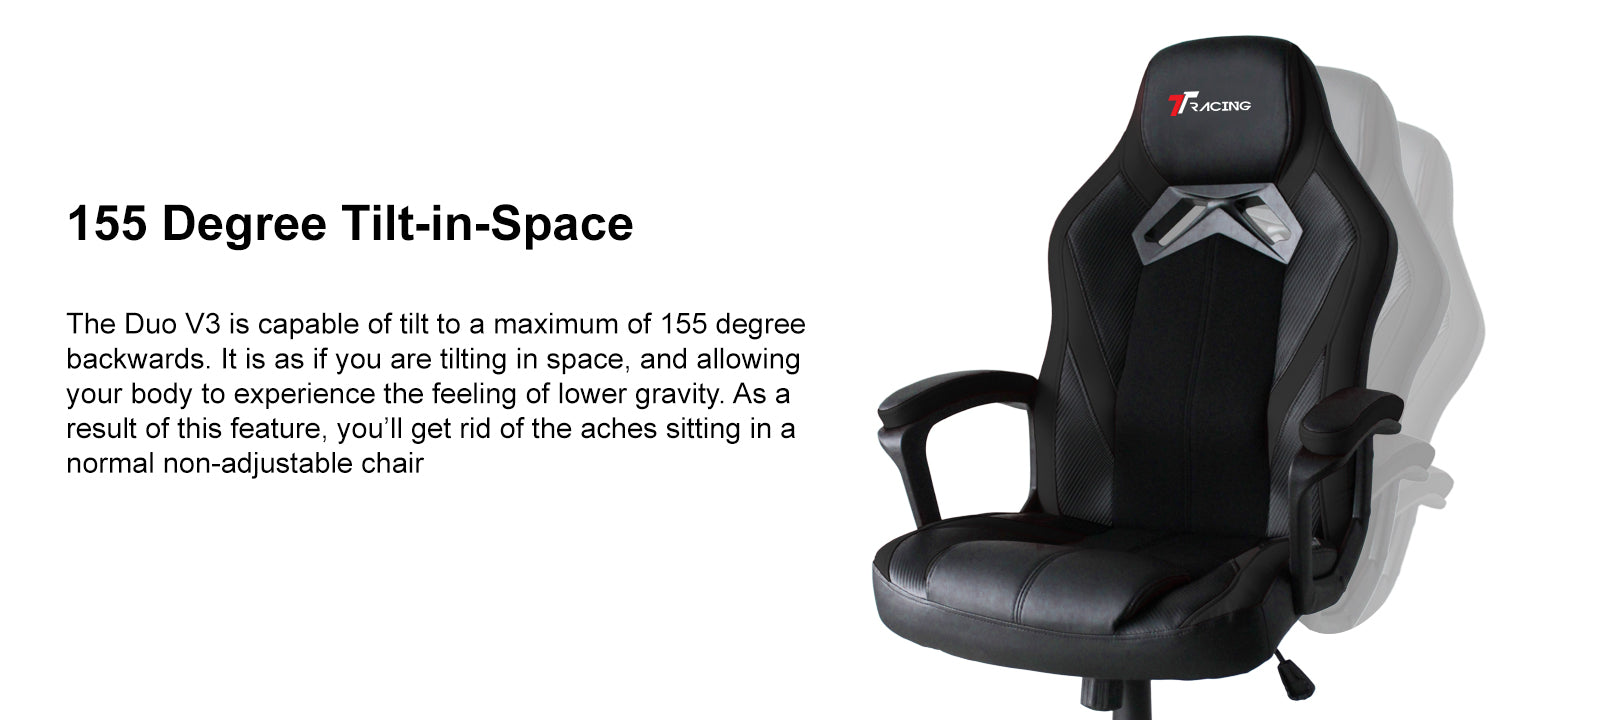 TTRACING DUO V3 PU LEATHER GAMING CHAIR tilt-in-space